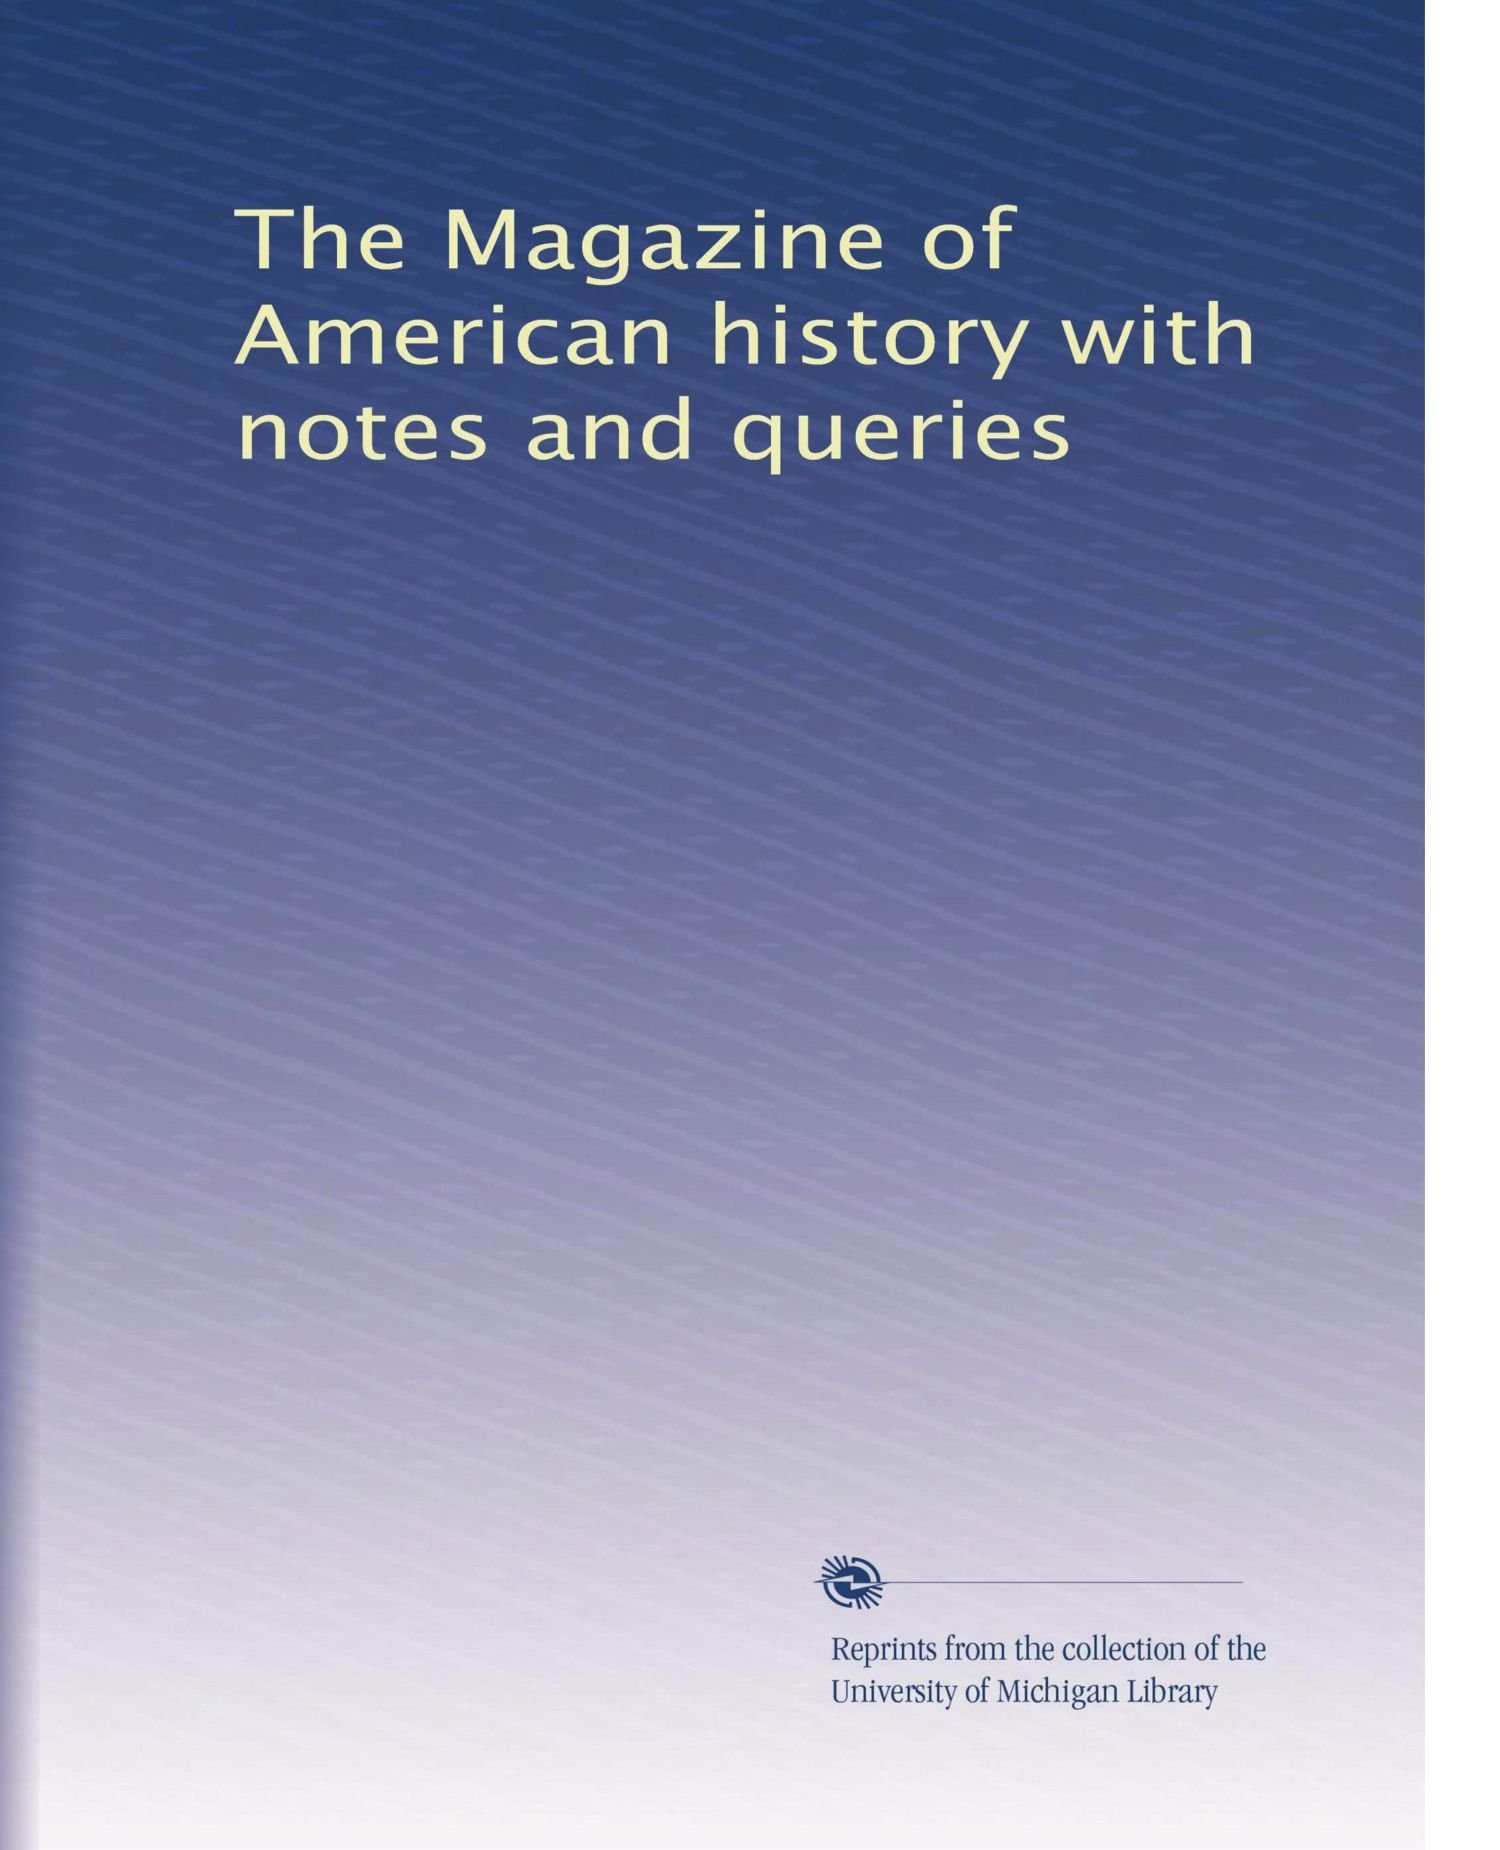 Download The Magazine of American history with notes and queries (Volume 23) ebook